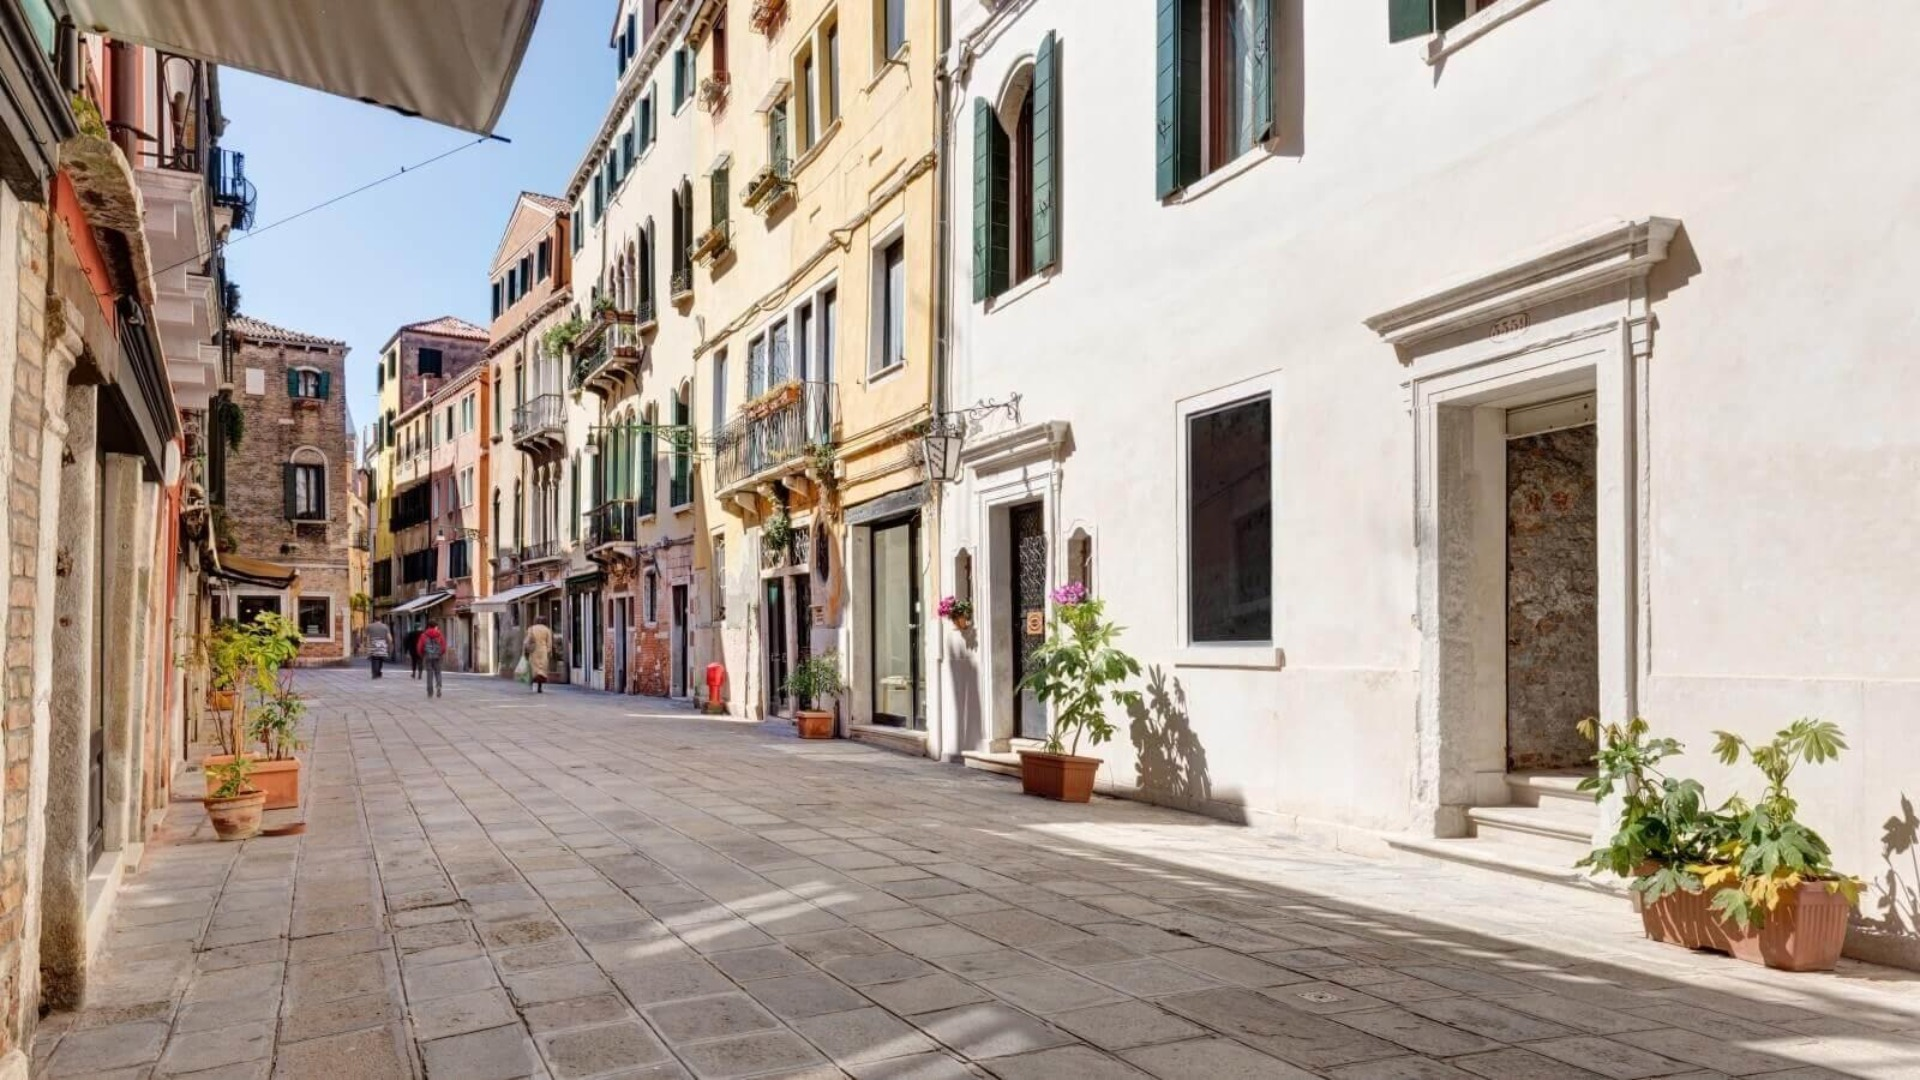 A person walking down a street next to a building at Hotel San Samuele.